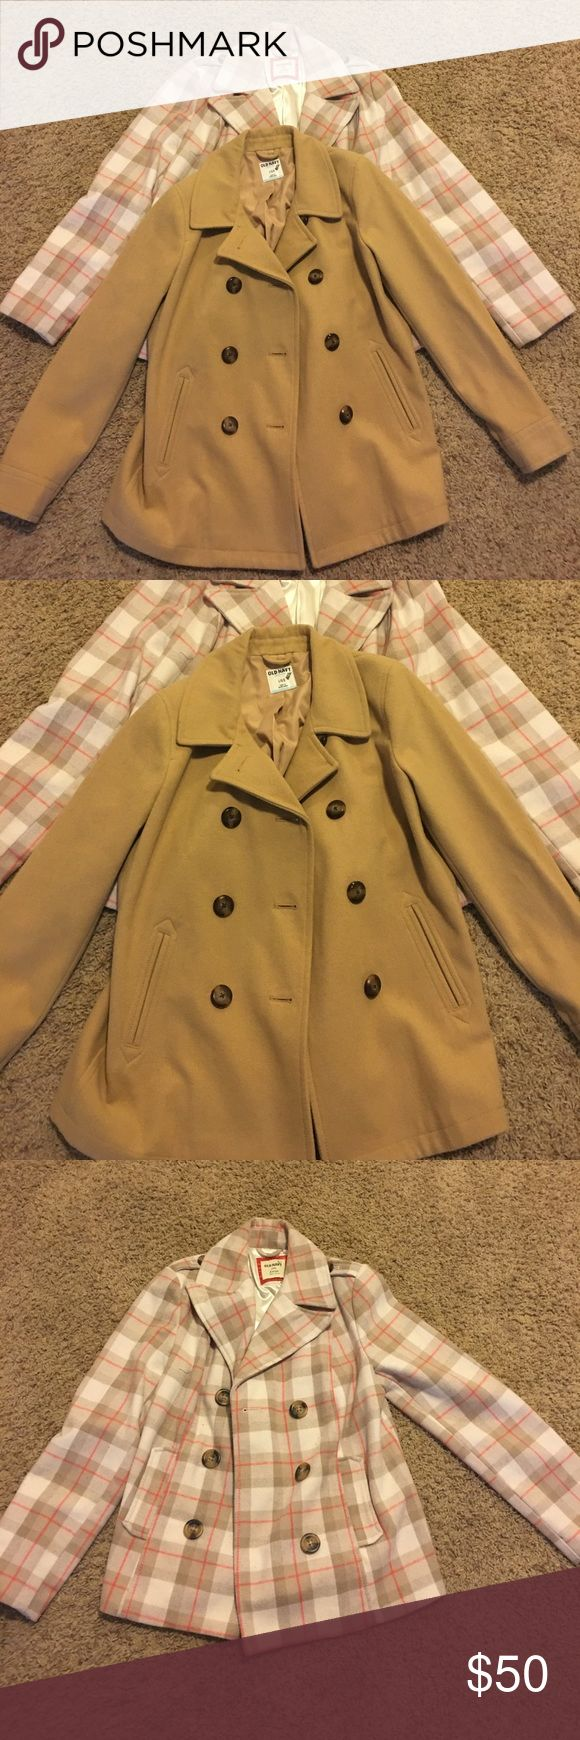 Old Navy Pea Coat Bundle😍 Two Old Navy Pea Coats for $50. Old Navy Jackets & Coats Pea Coats